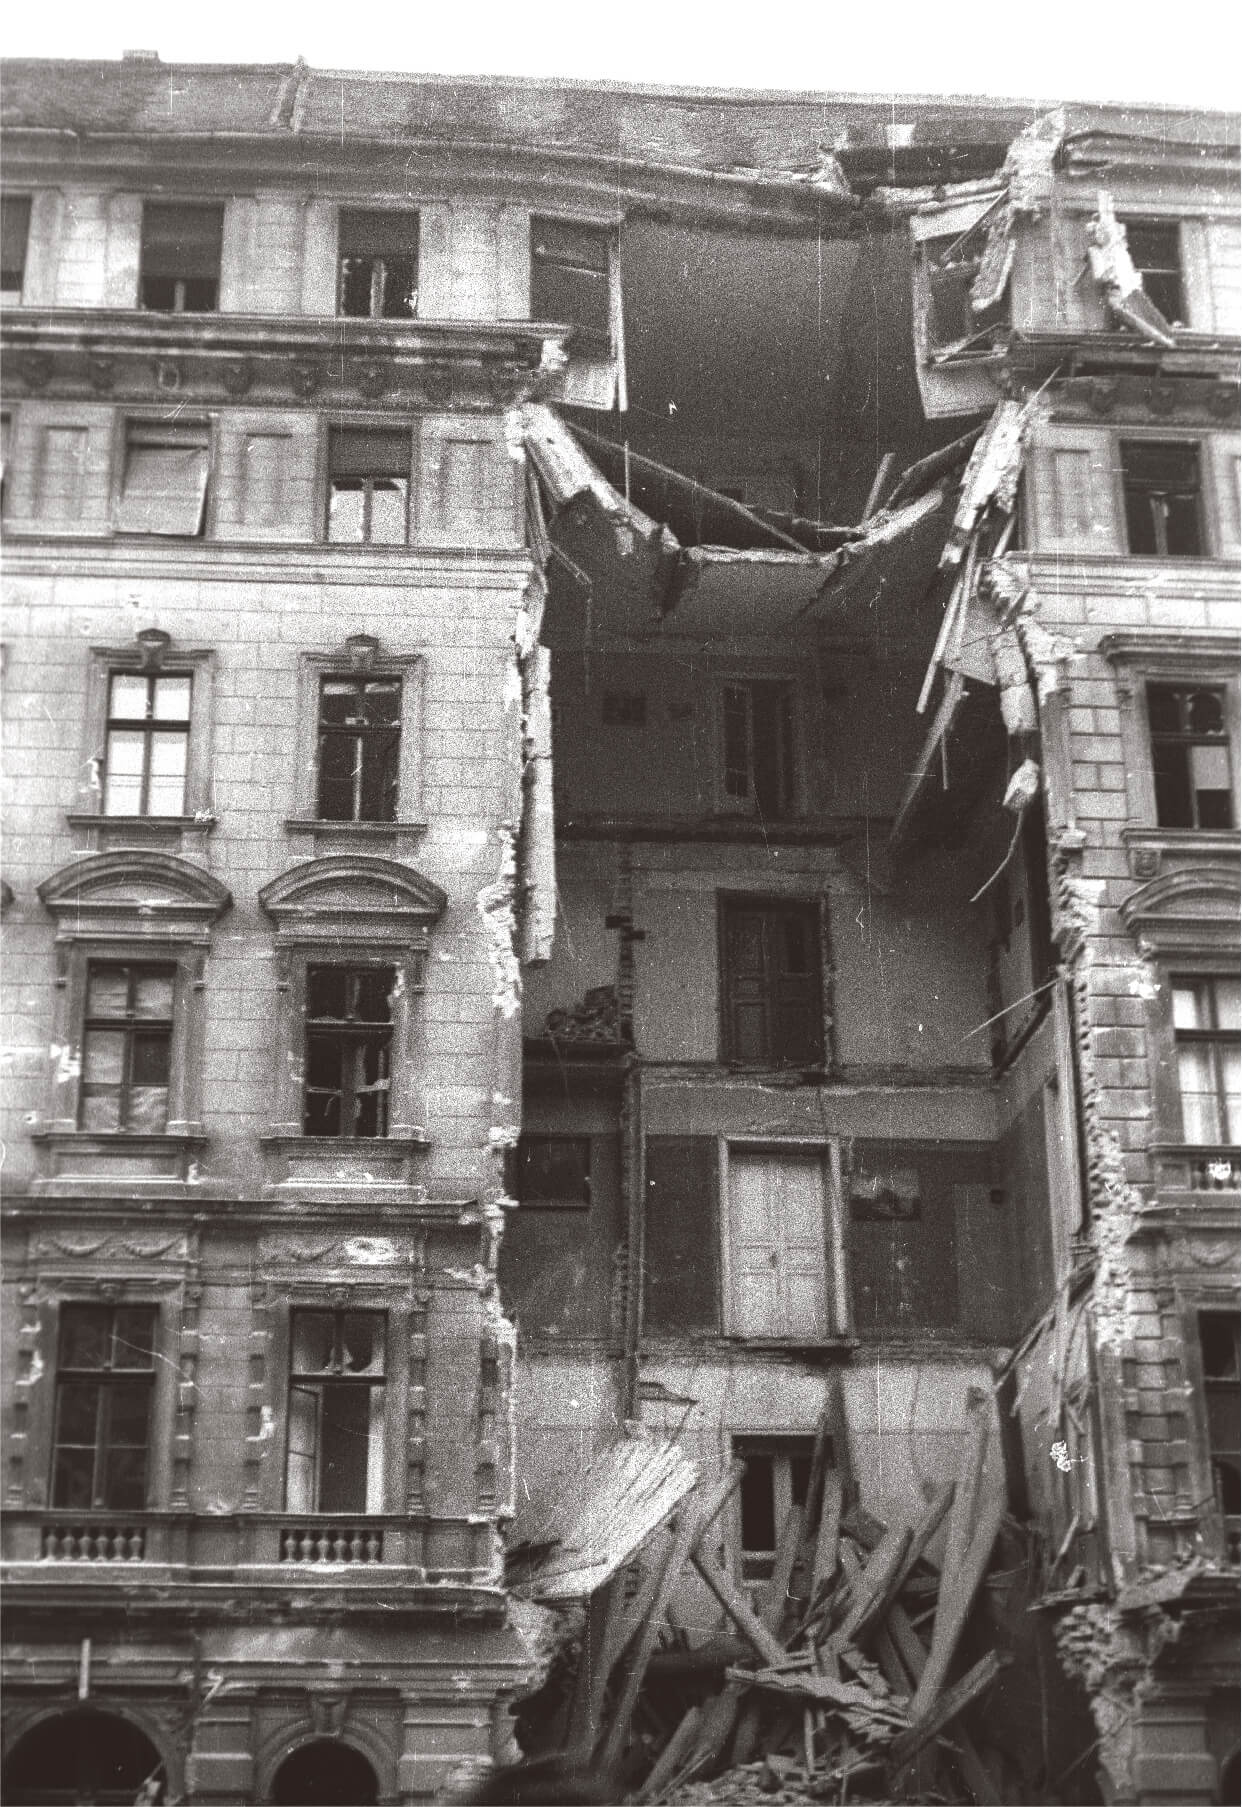 Bombed Budapest building in 1956